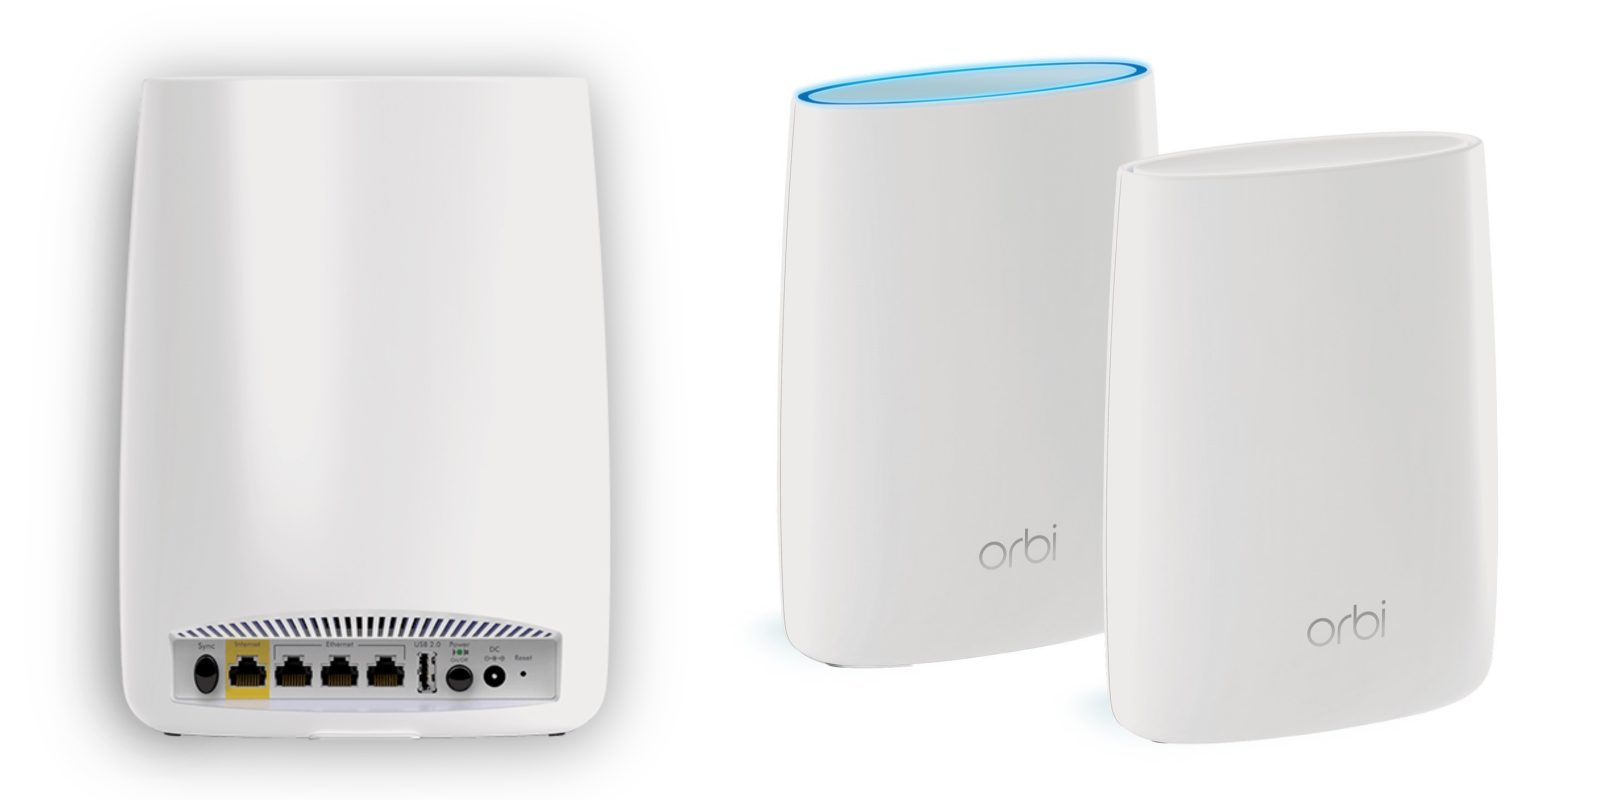 Review: Netgear Orbi mesh system blankets your home in fast